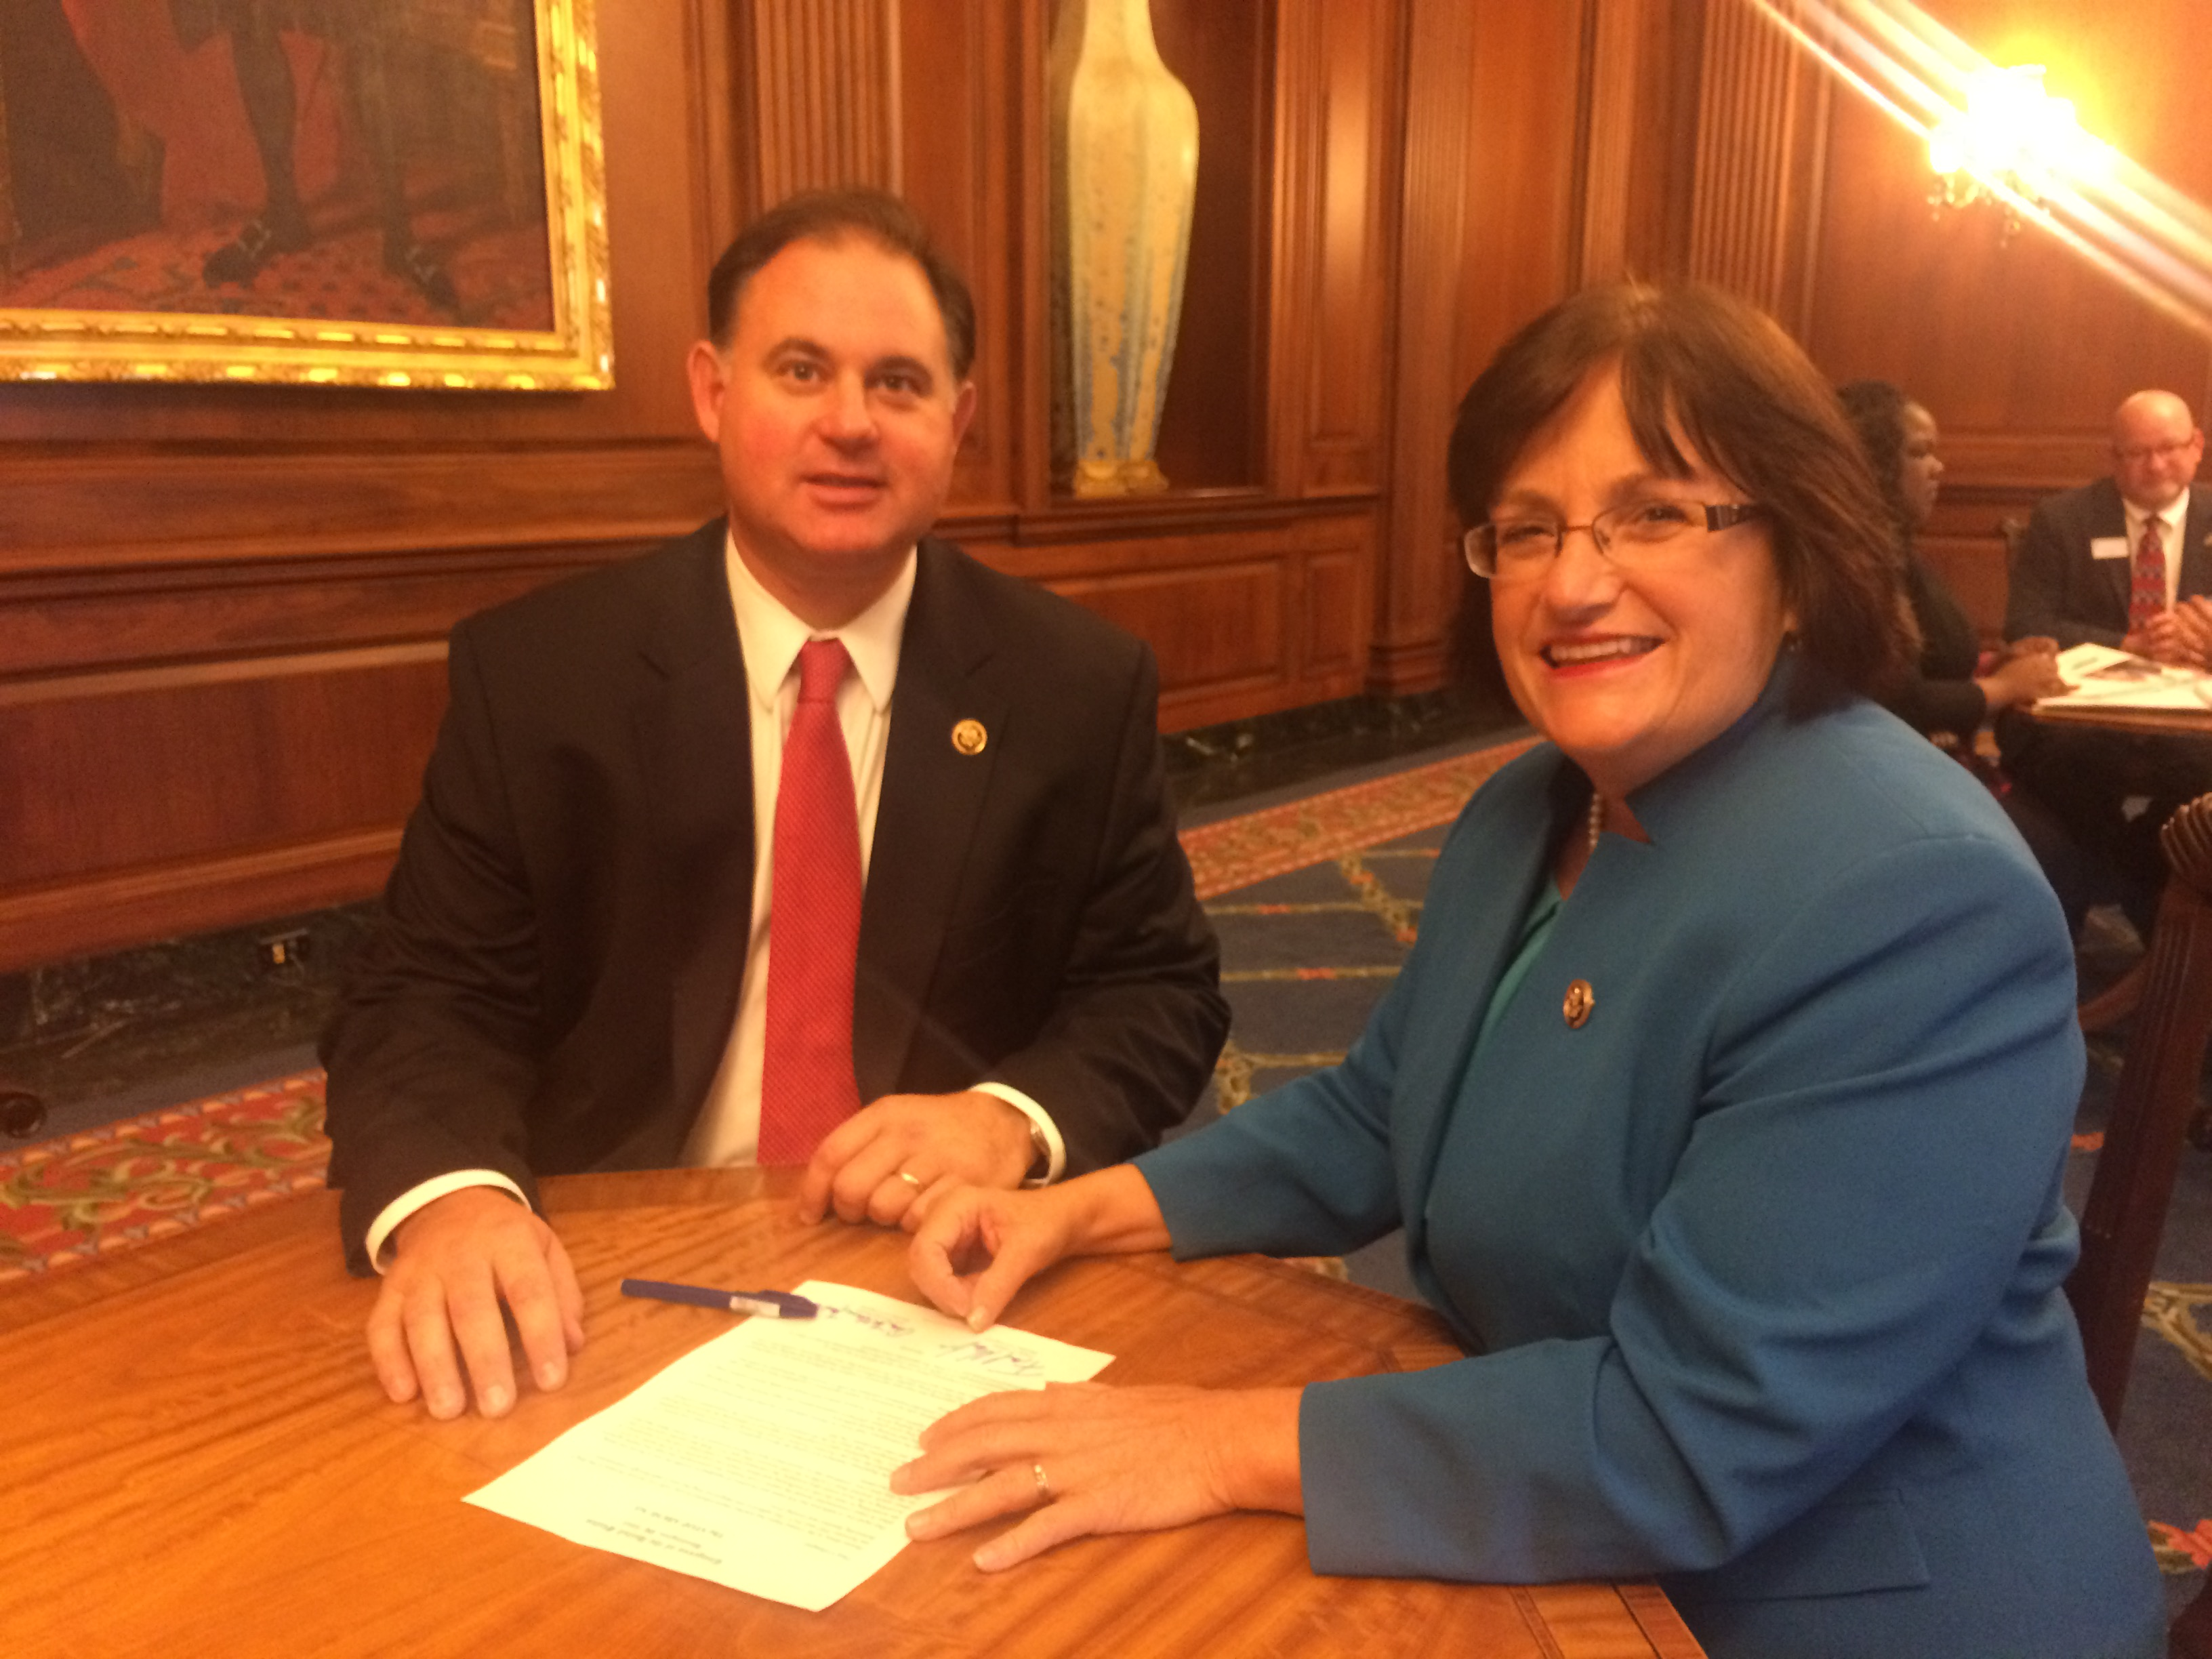 Reps. Kuster and Guinta after signing the STOP ABUSE Act.